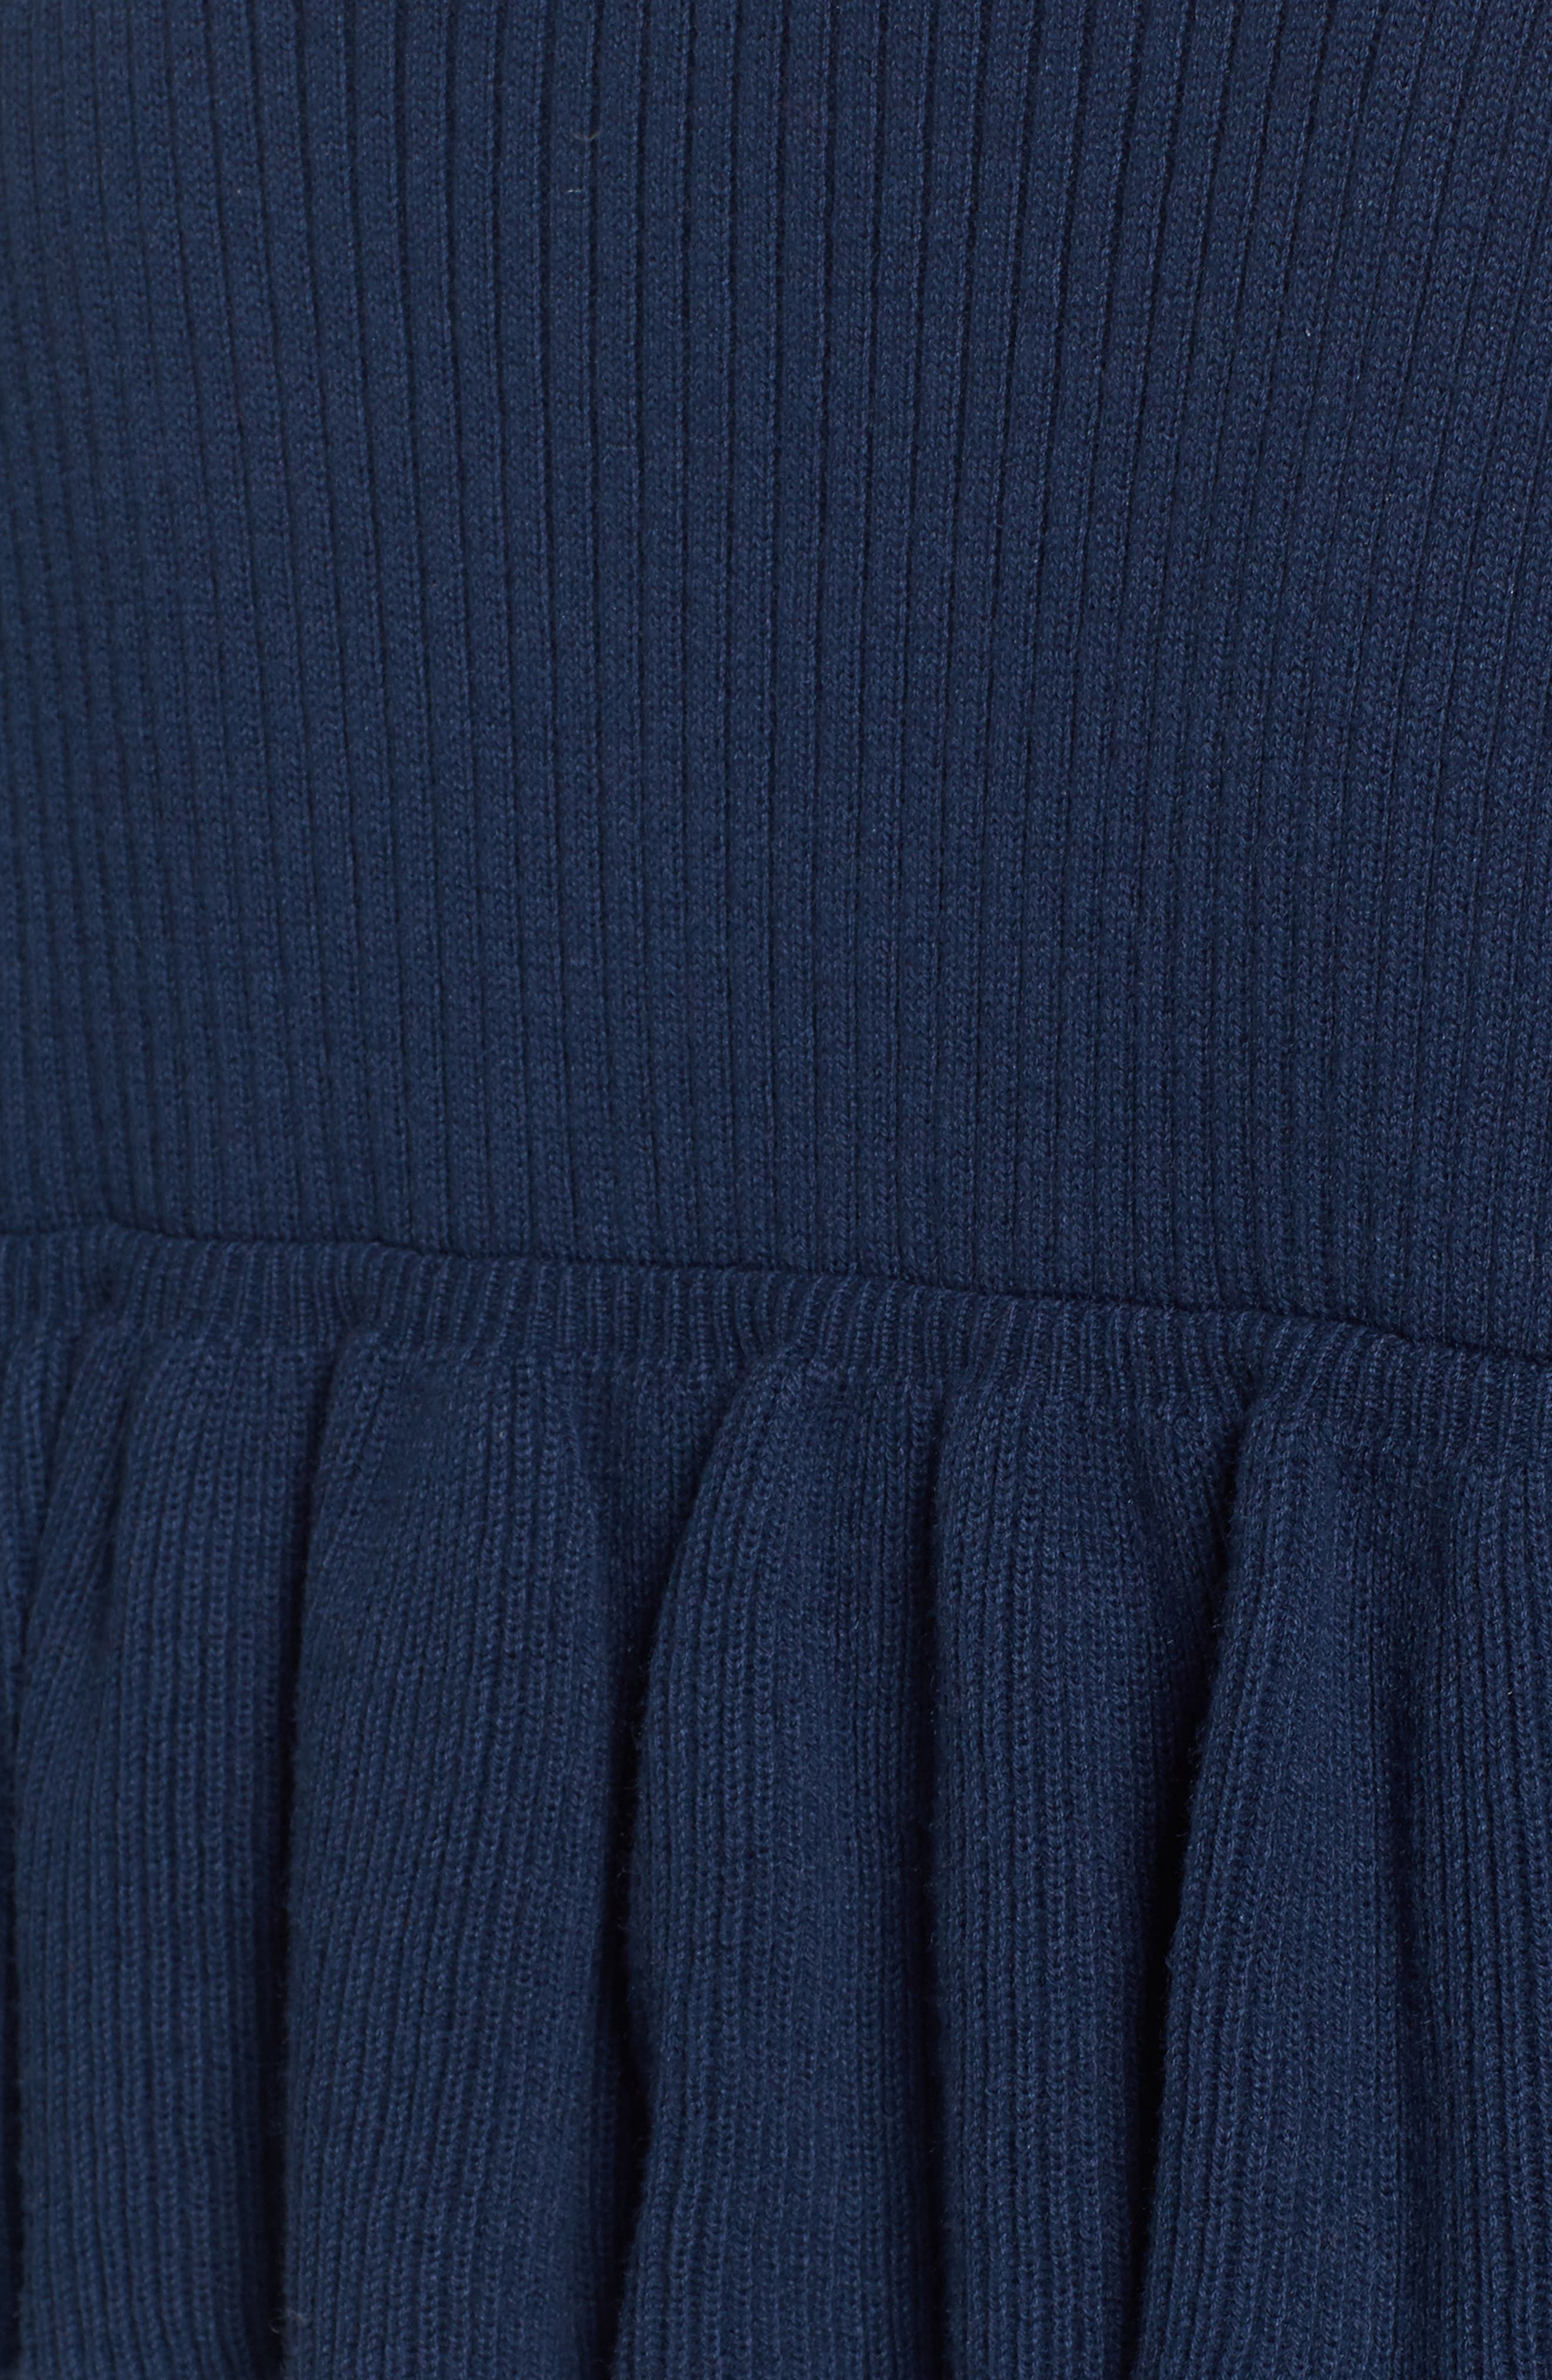 Ribbed Ruffle Sweater,                             Alternate thumbnail 5, color,                             476